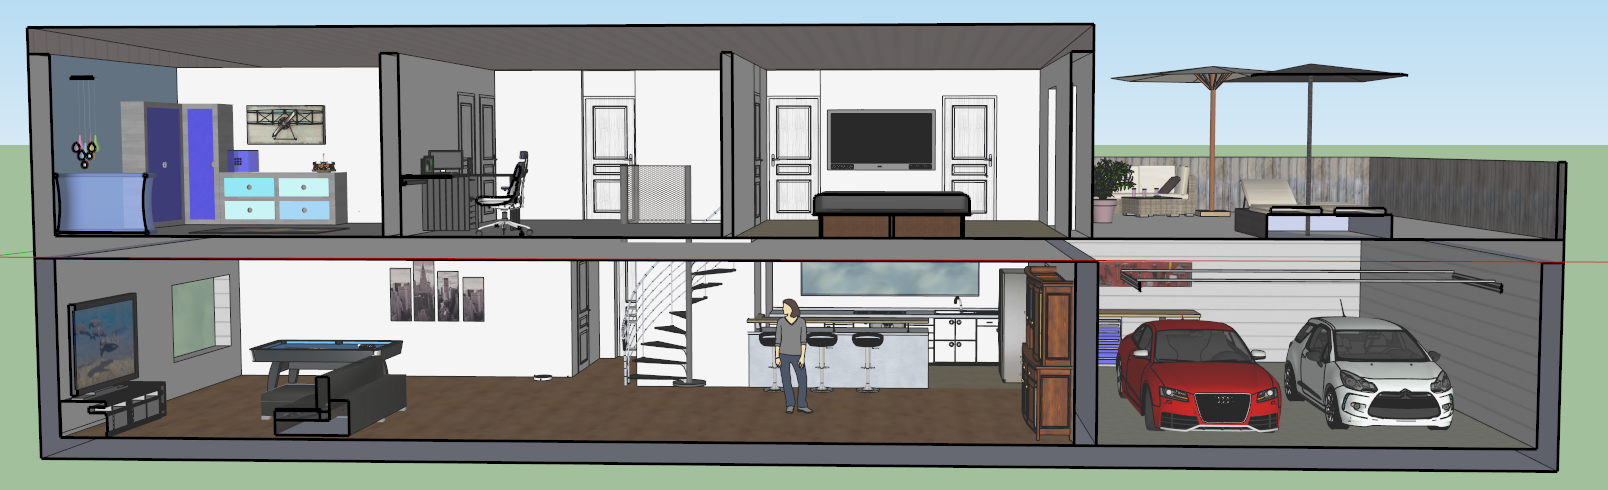 Google sketchup pro 8 site de paulleflohic for Modele maison sketchup